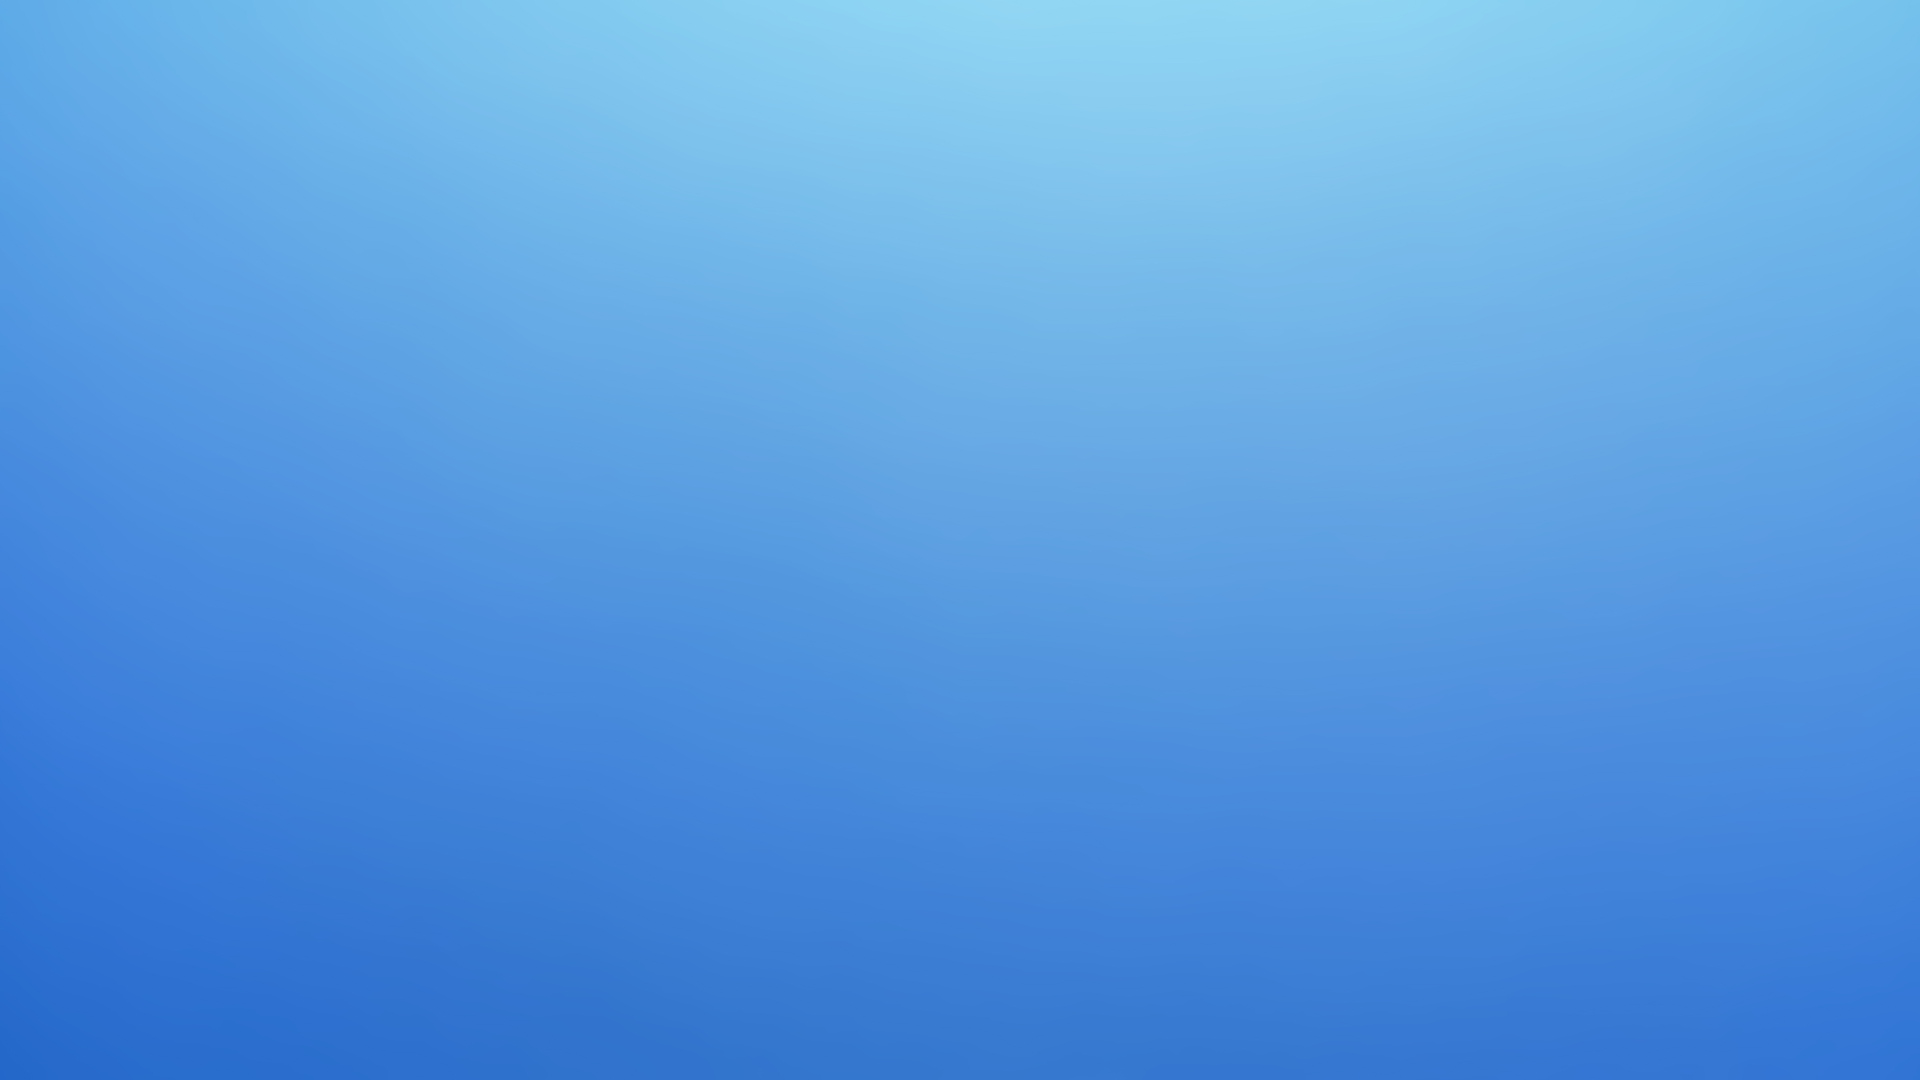 blue sky background related keywords suggestions blue